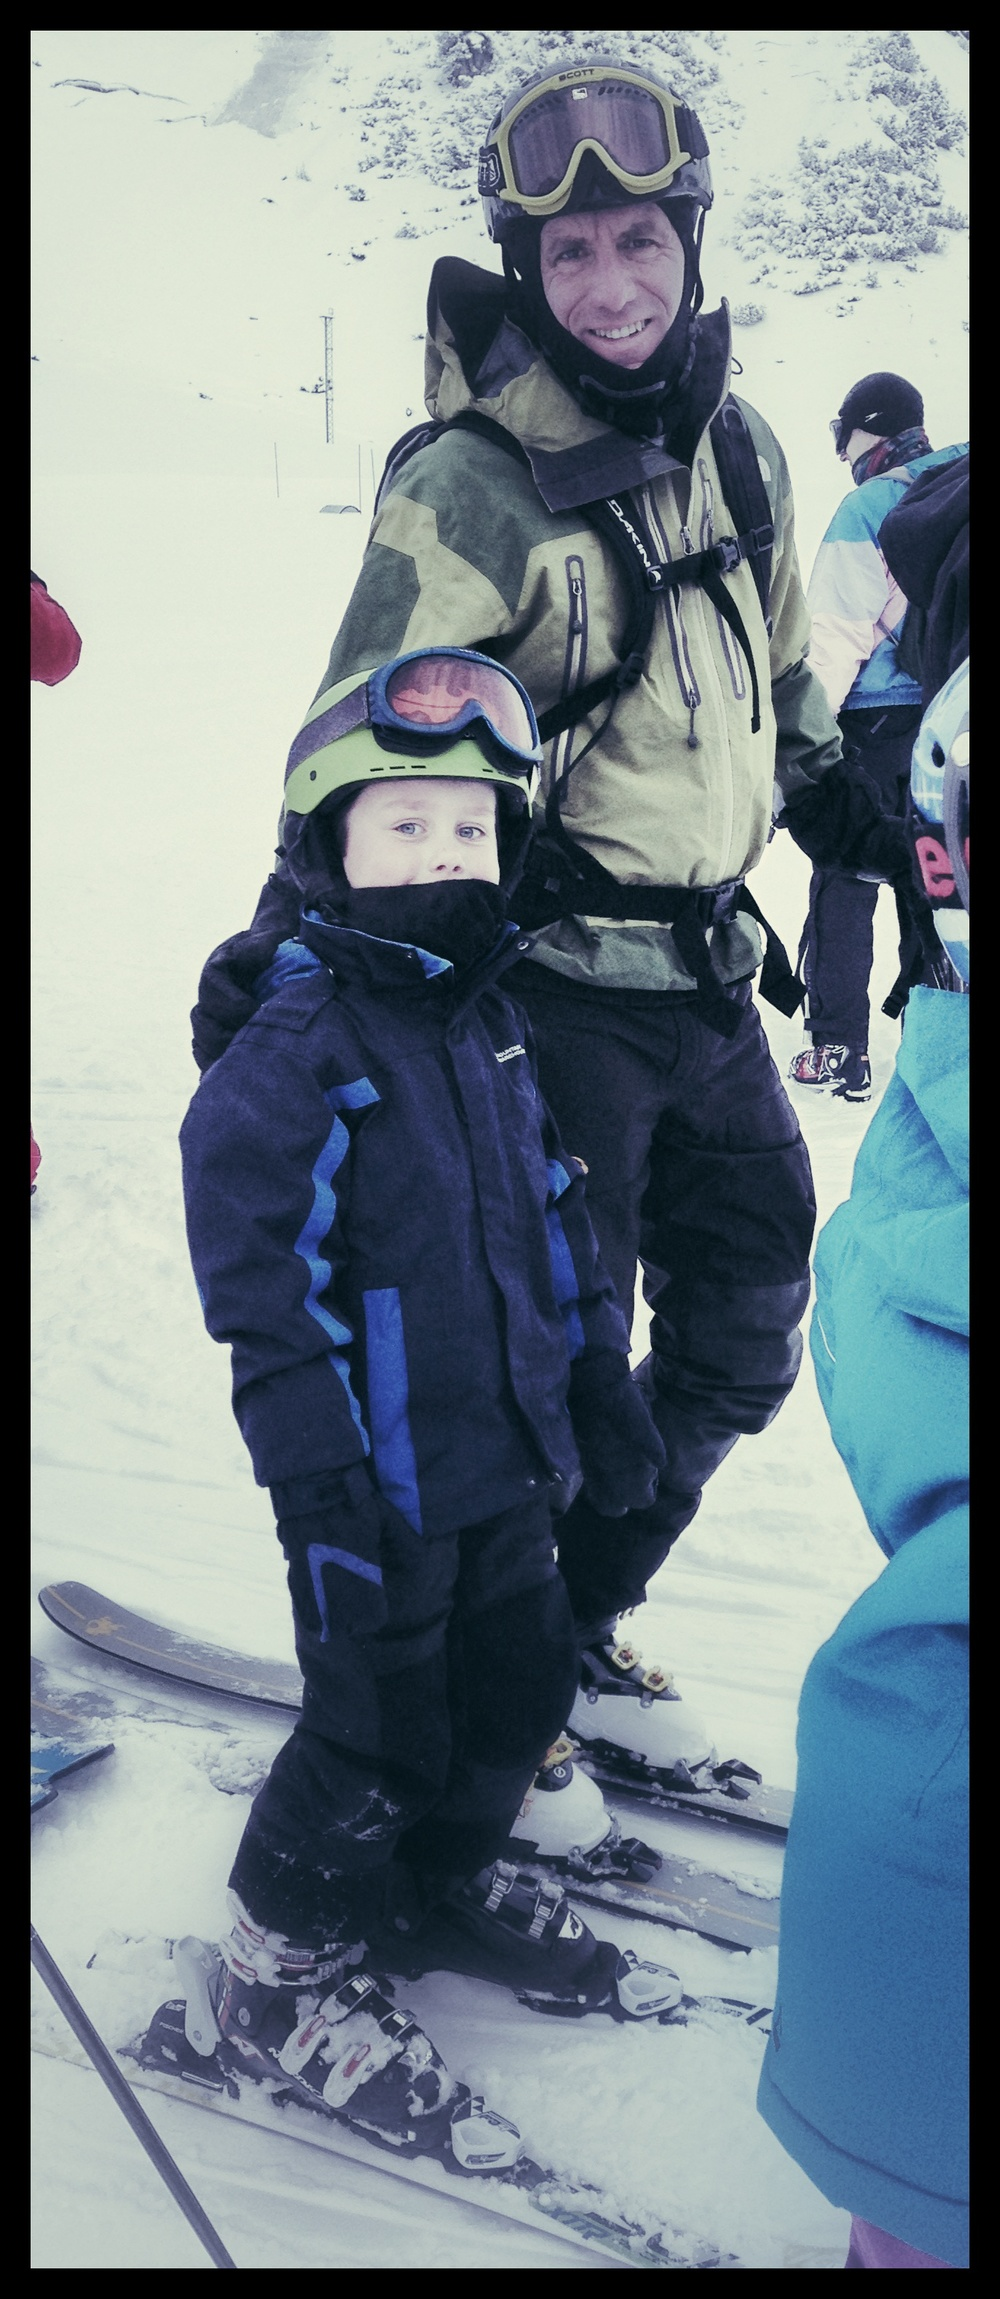 Feigning enthusiasm at the start of ski school